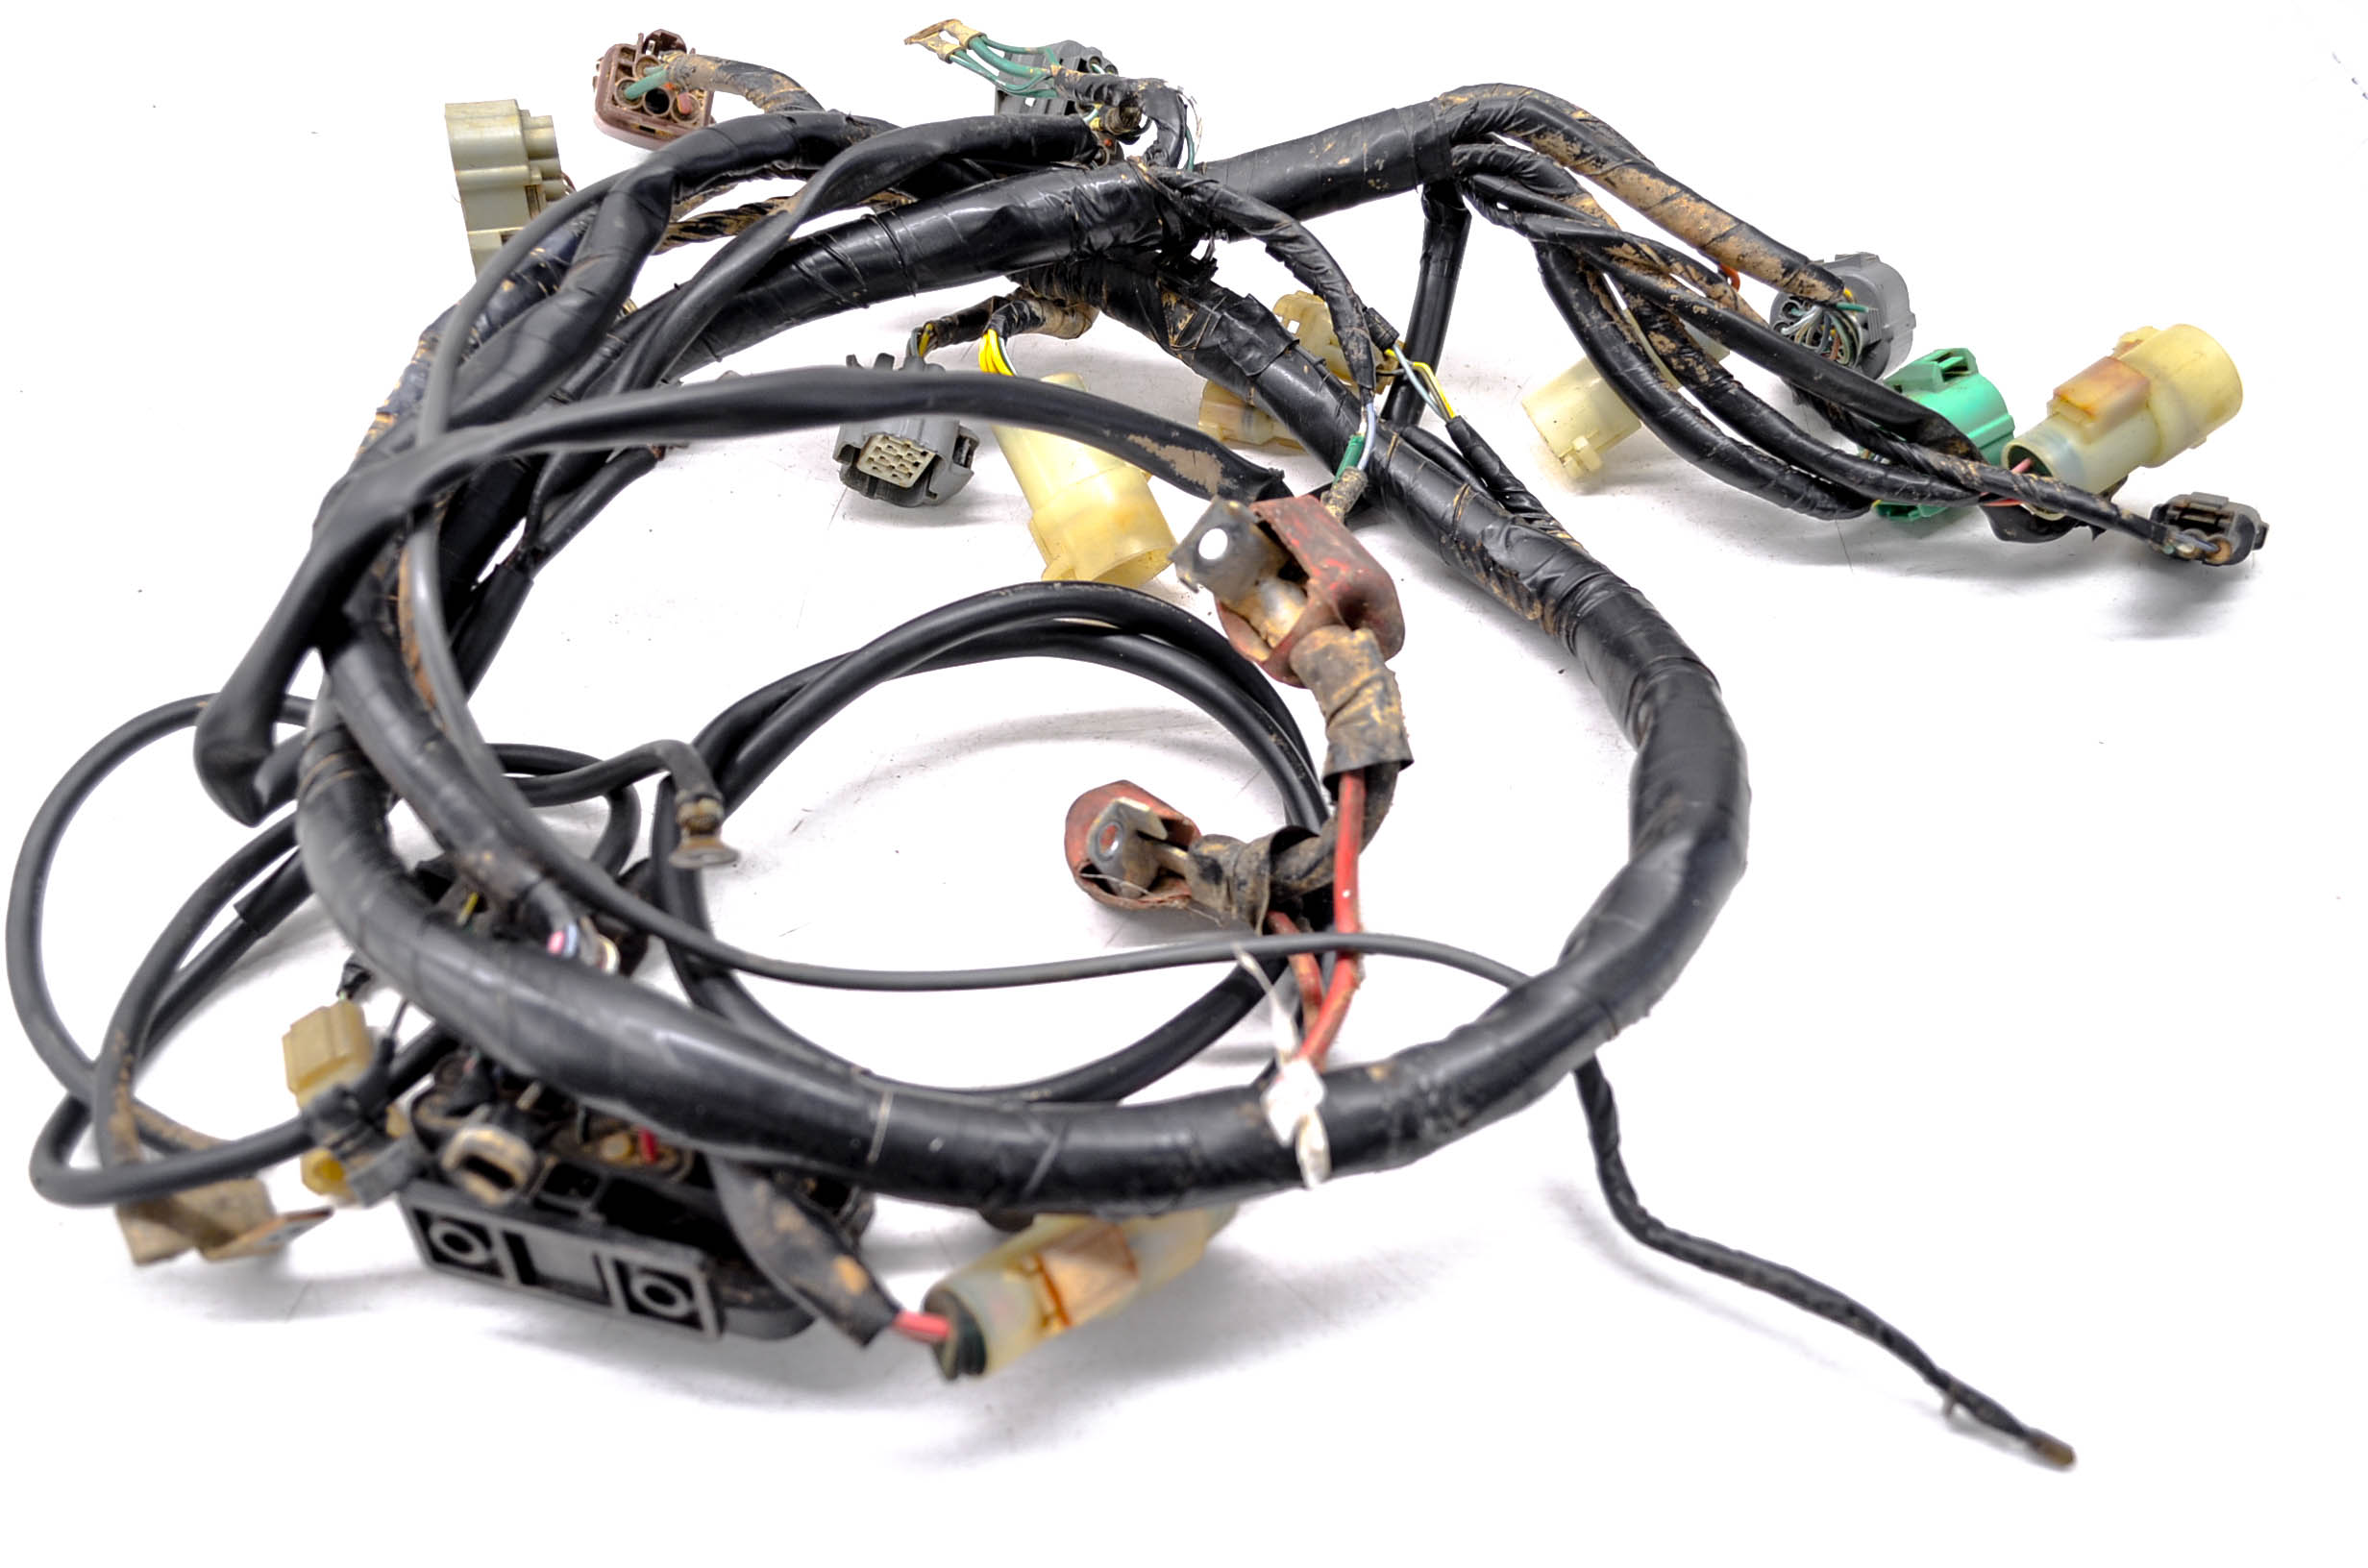 Details about 01 Honda Rancher 350 2x4 Wire Harness Electrical Wiring on